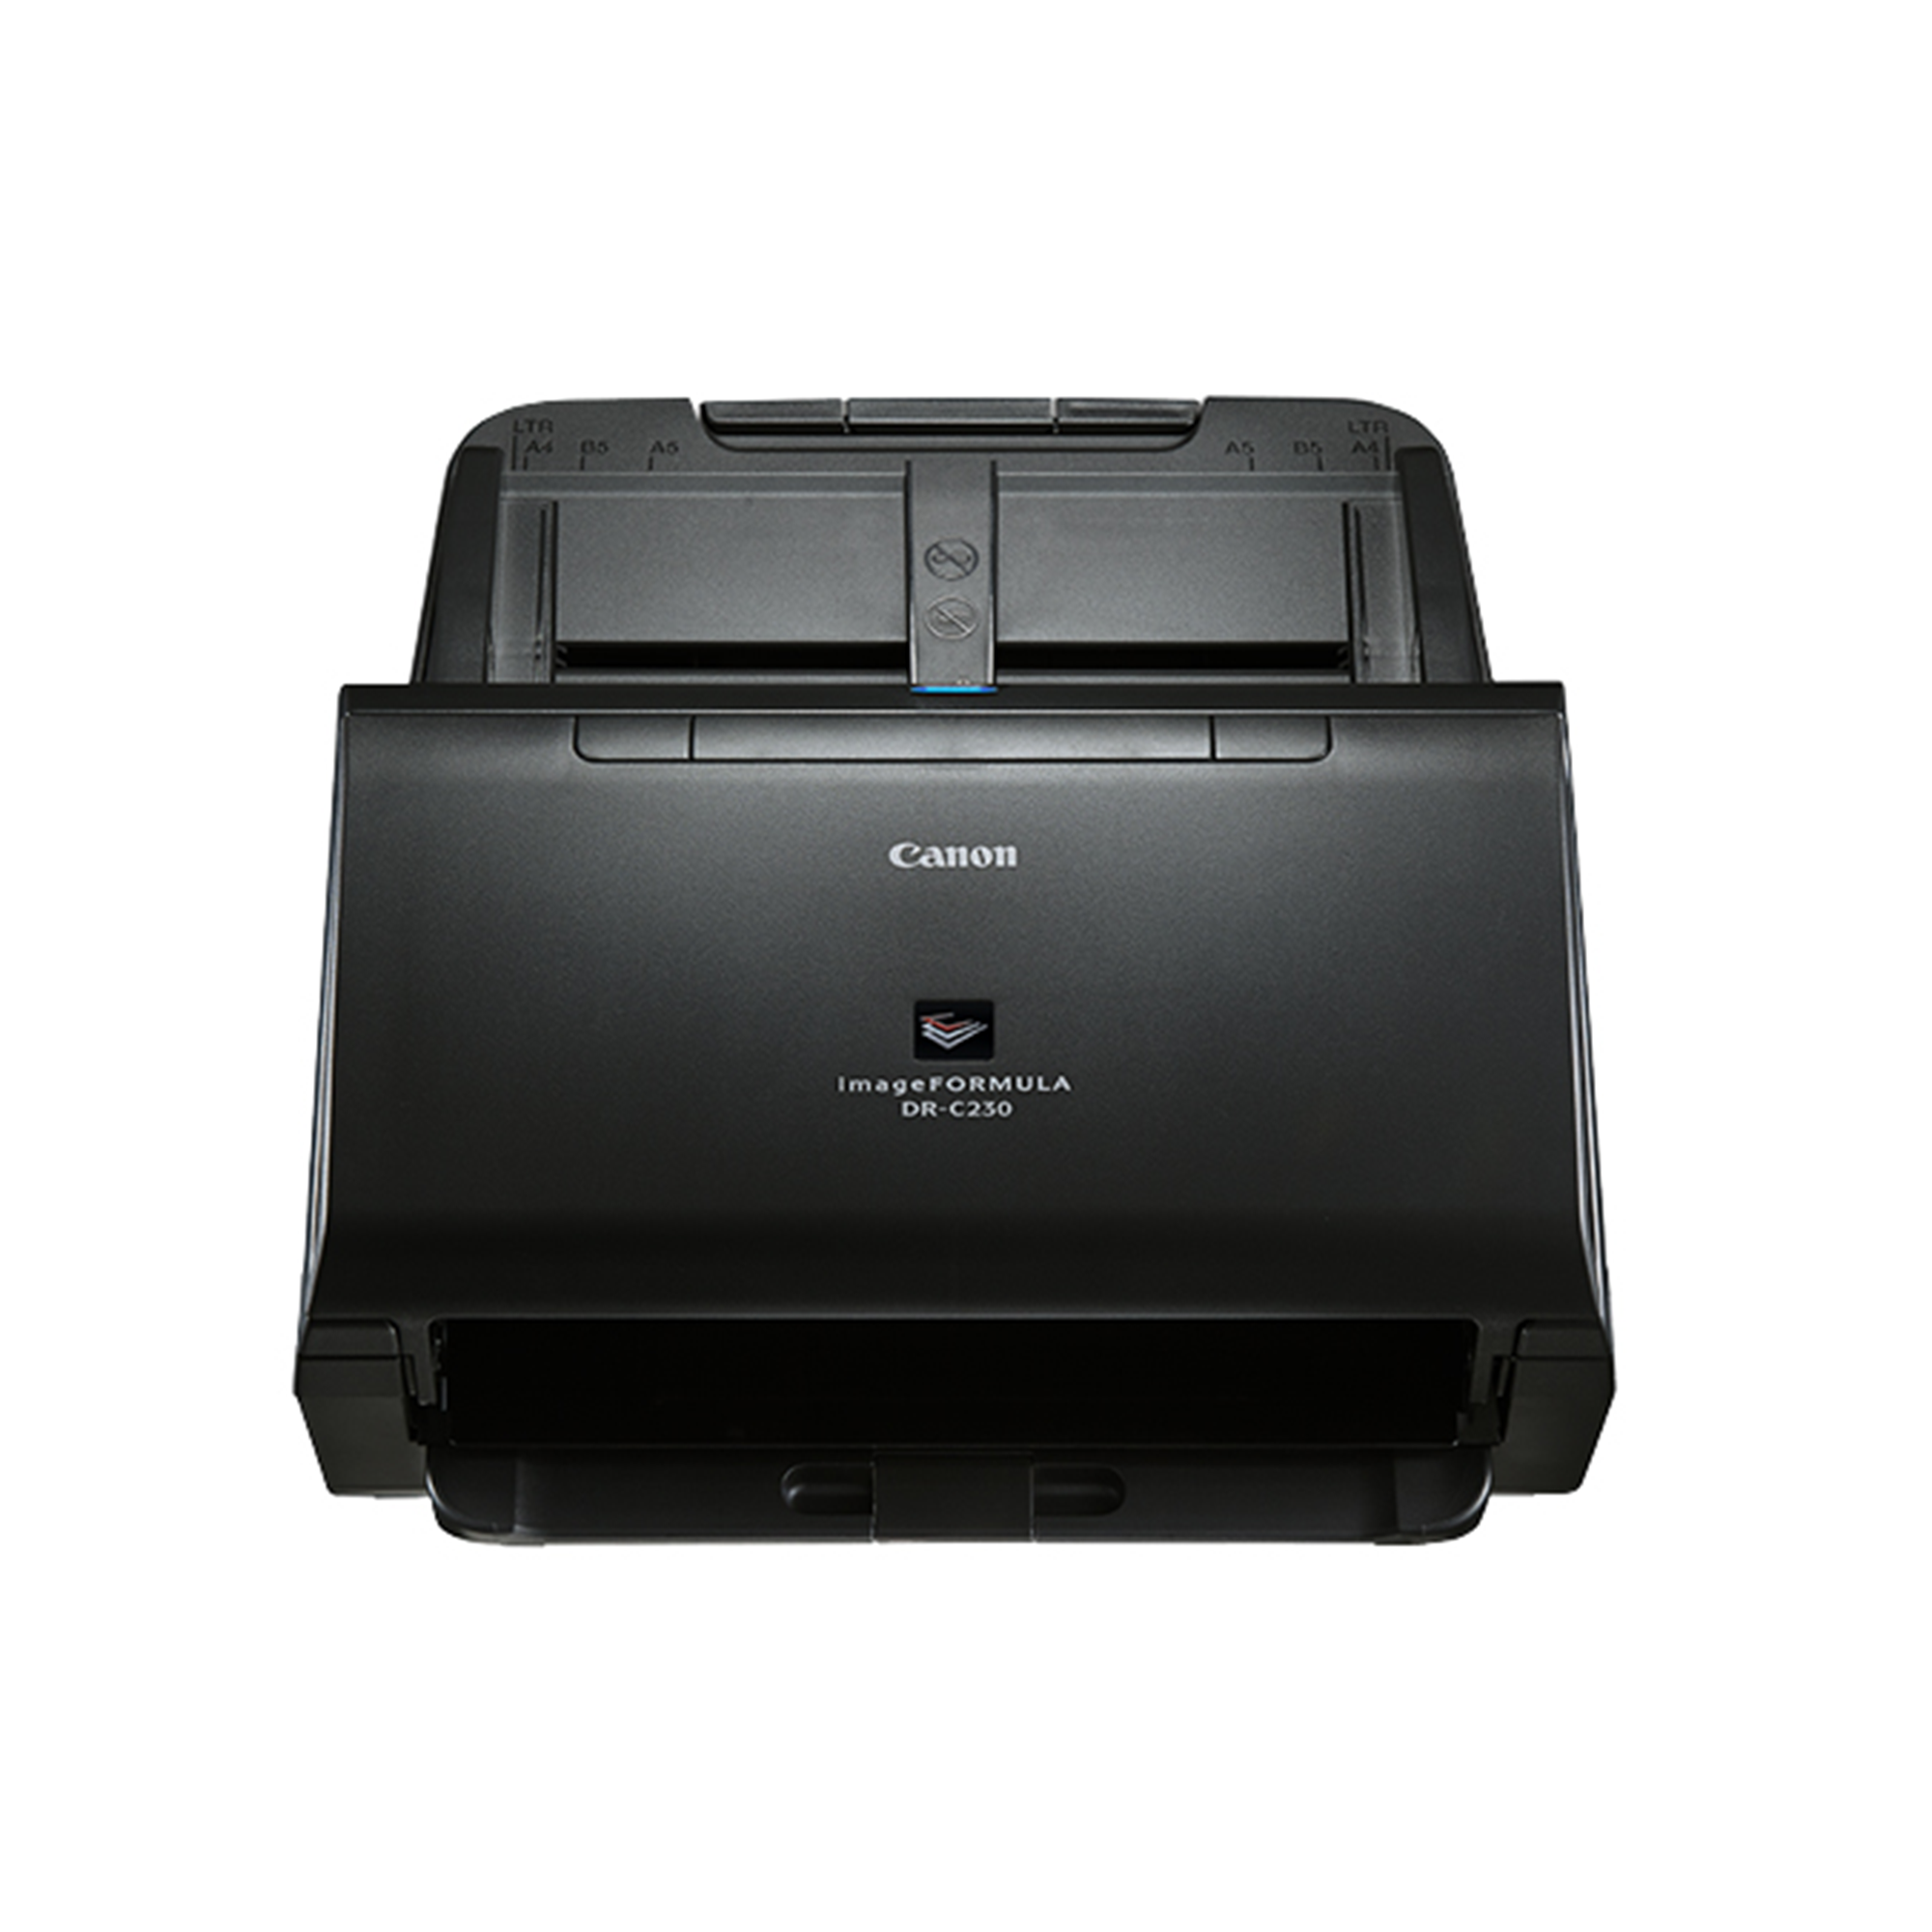 image FORMULA DR-C230 Office Document Scanner